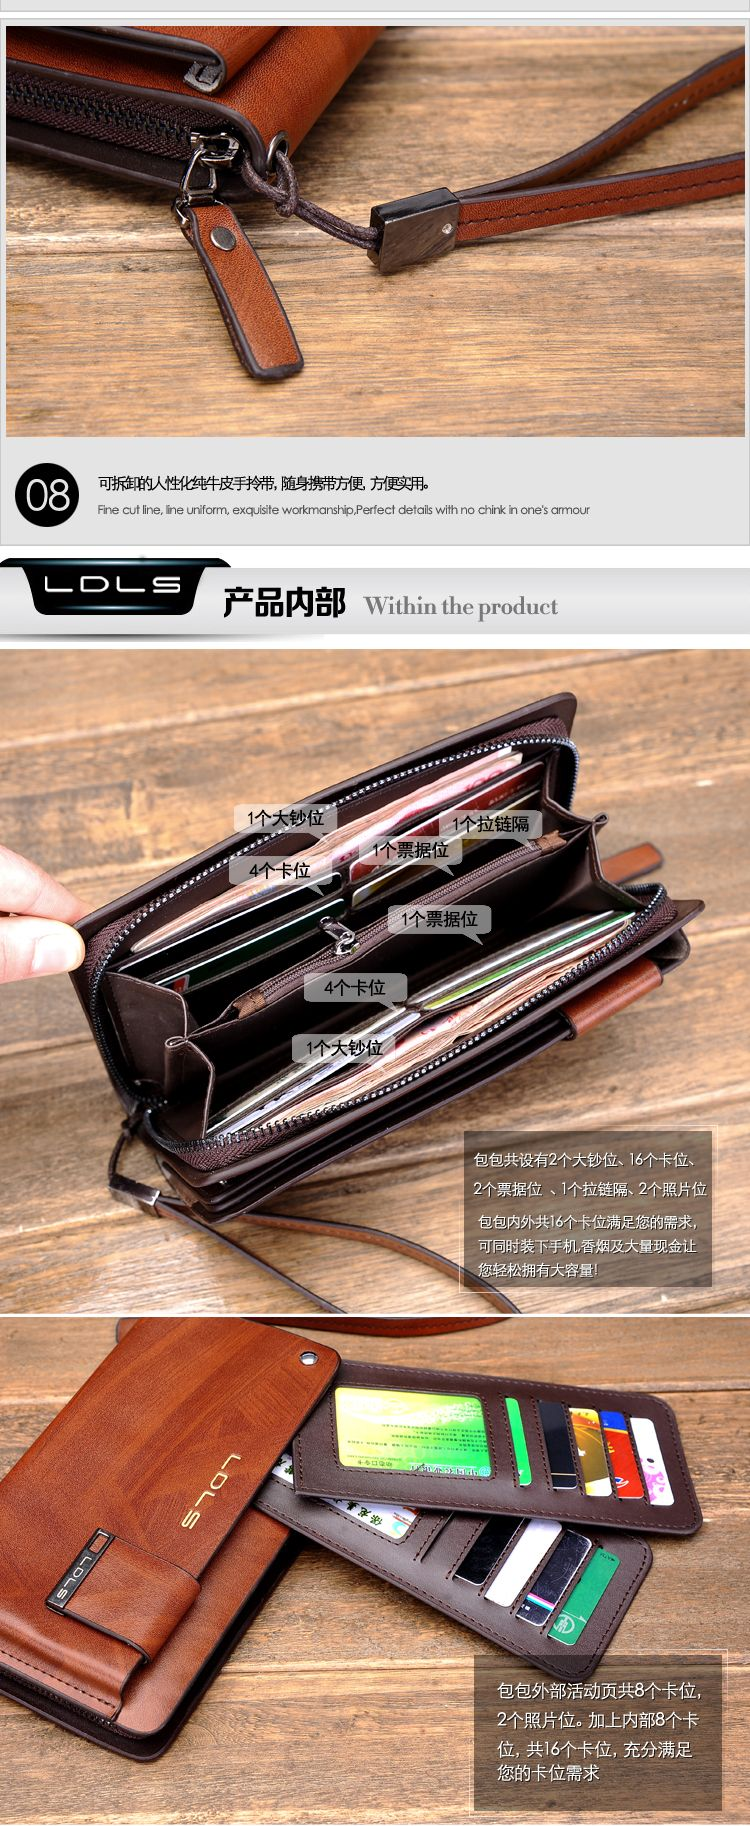 Male Clutch Genuine Leather Day Clutch Commercial Clutch Bag